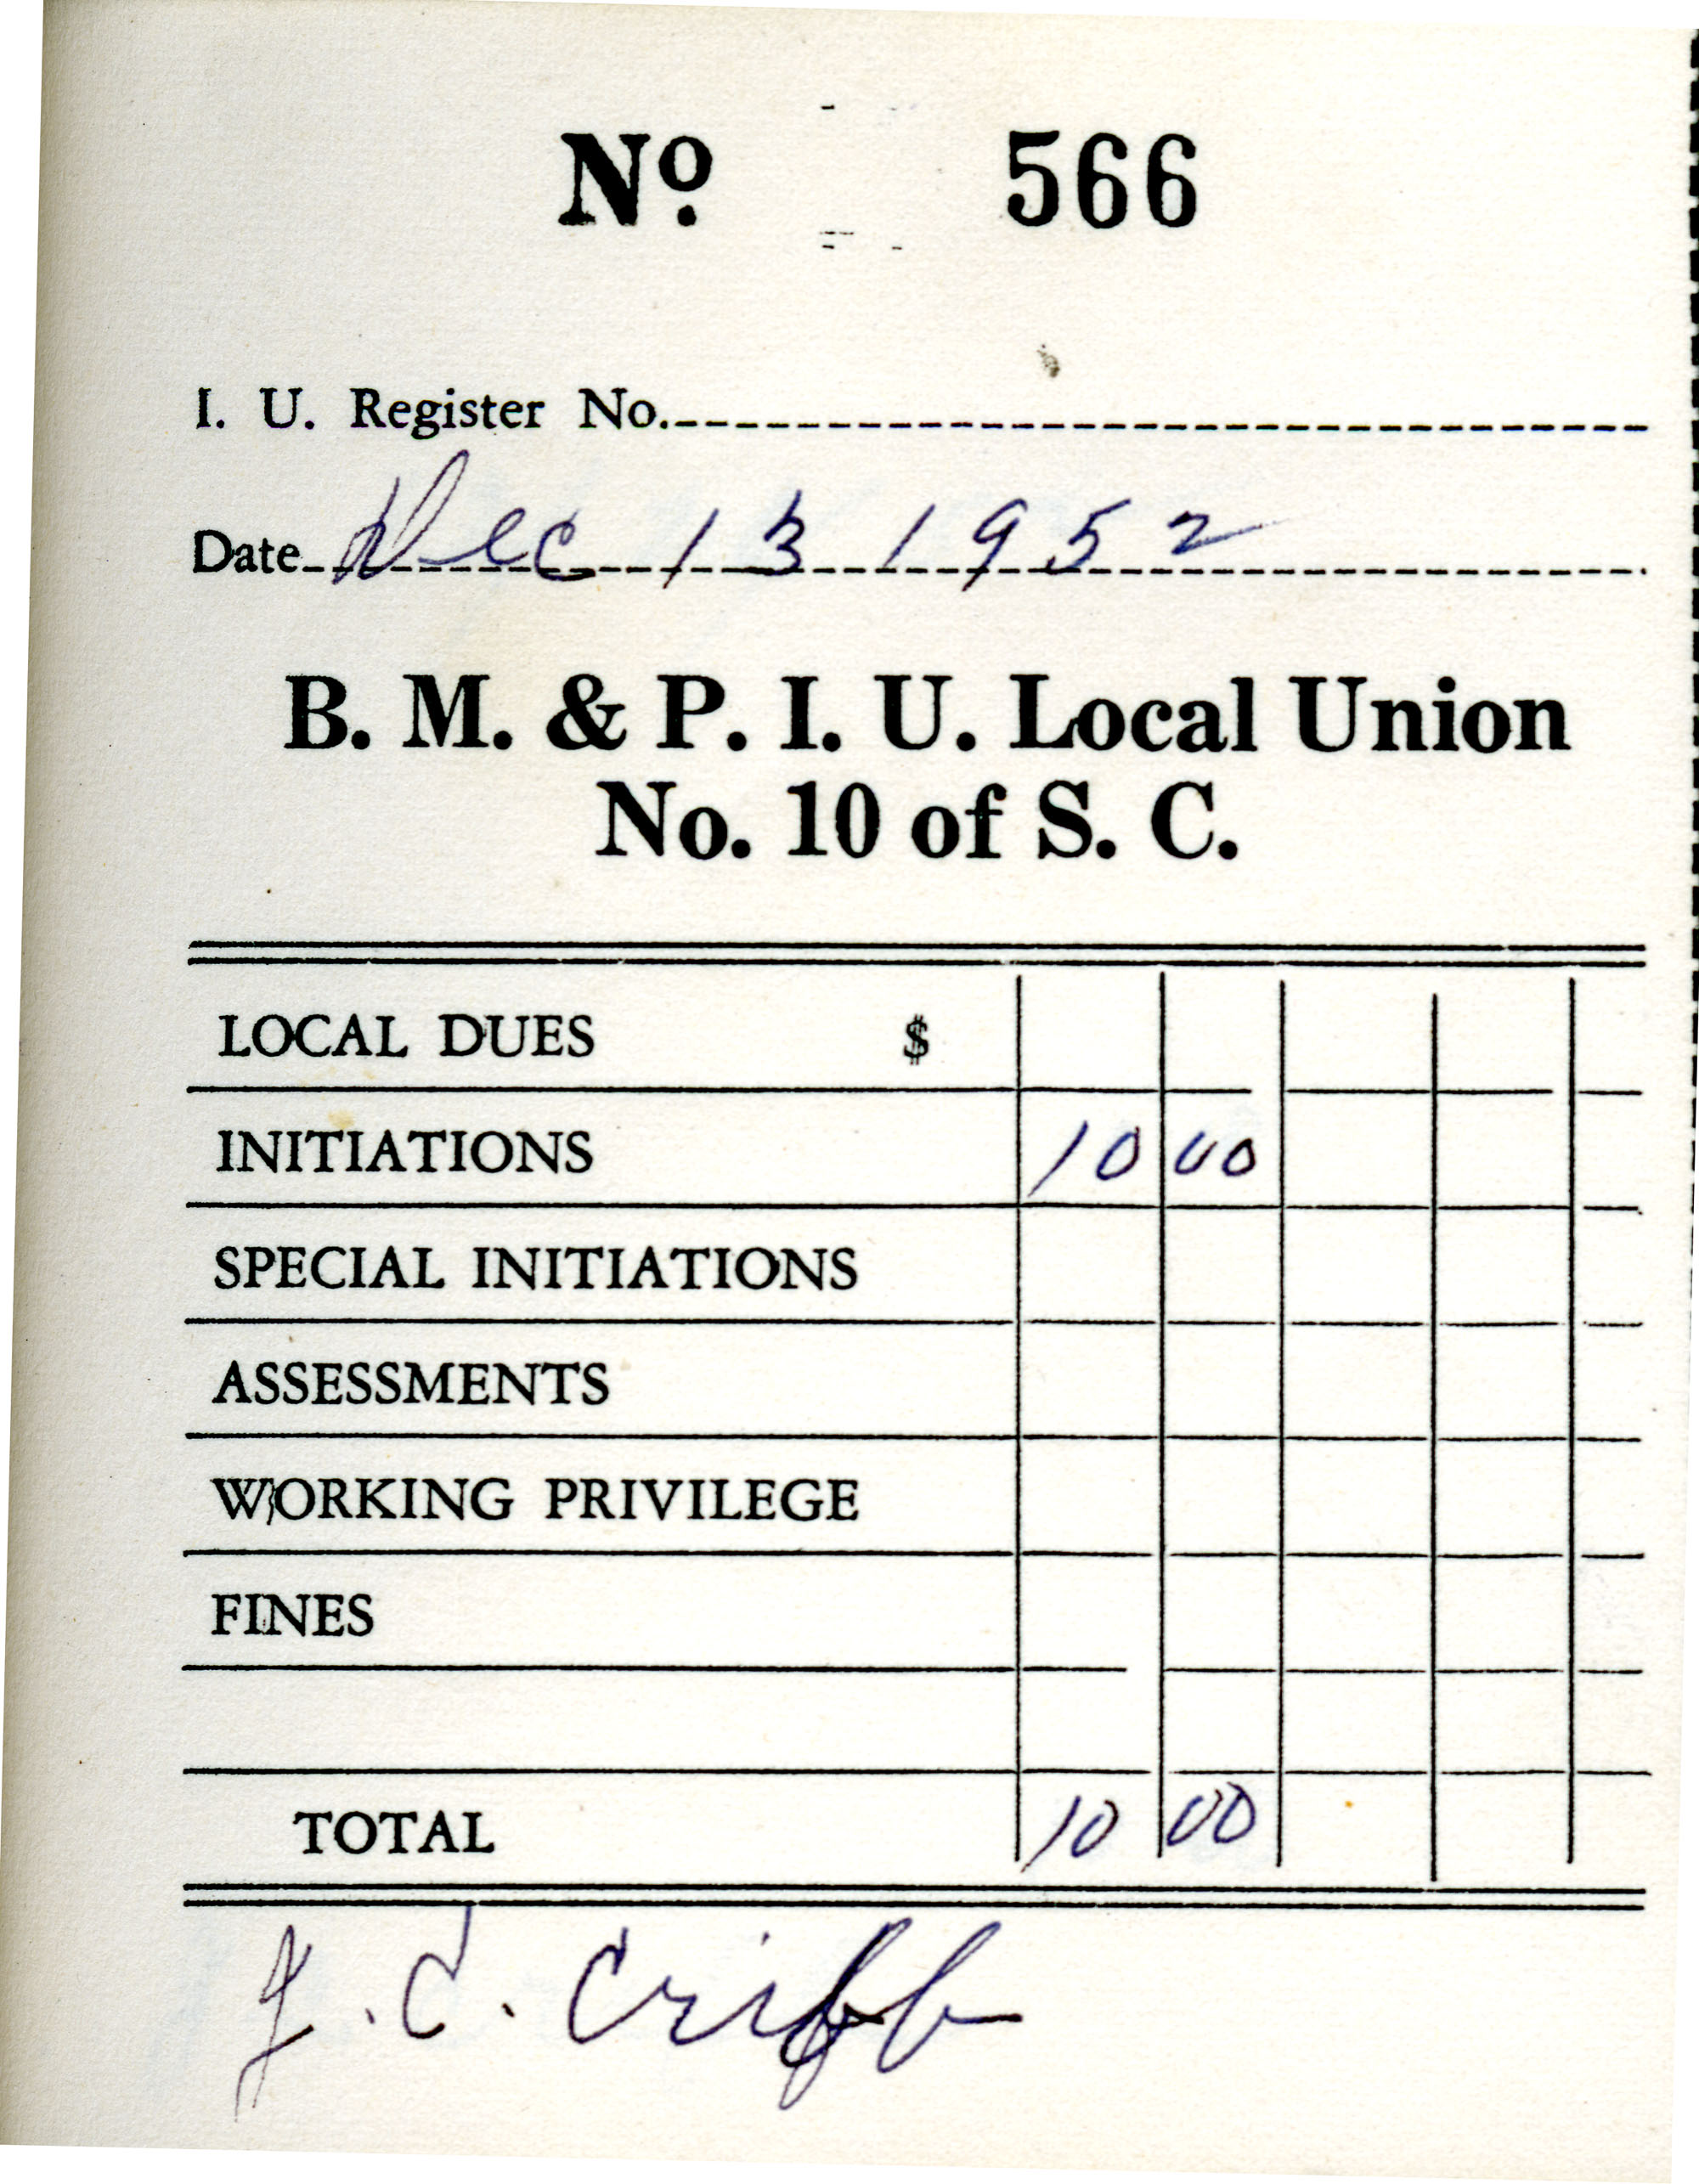 Receipt Book 1, Page 16